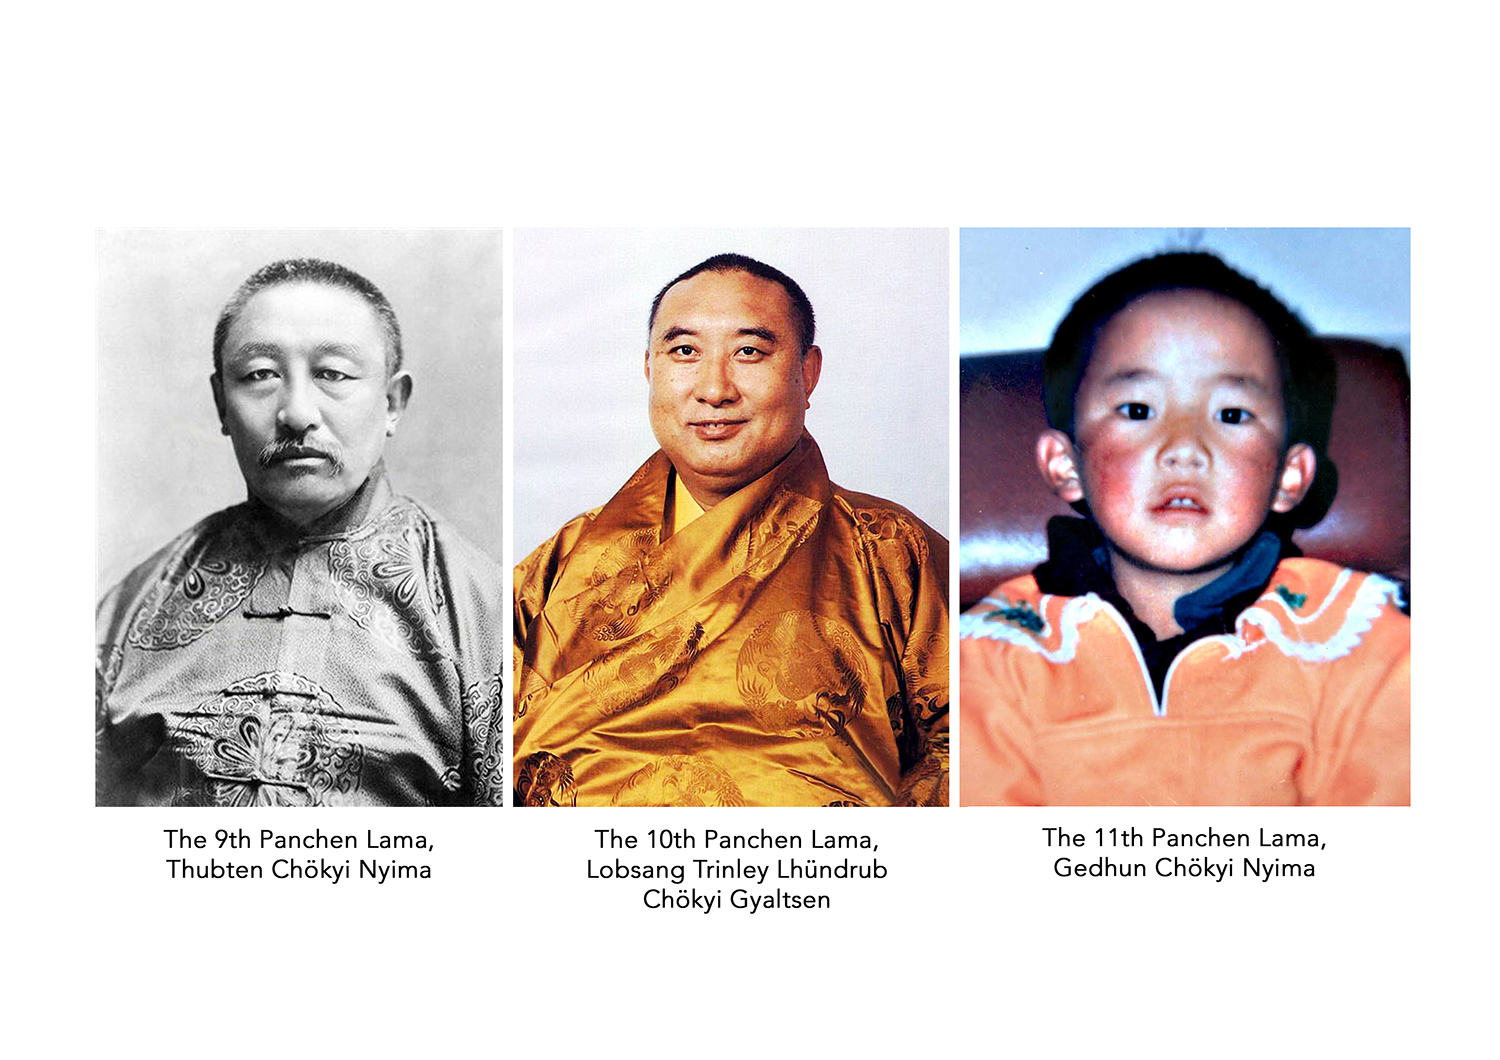 His Holiness the Panchen Lama. On the far right is the CTA-recognized 11th Panchen Lama. Again, their recognition of any Panchen Lama candidate contradicts their claim that worshipping Dorje Shugden sends you to the three lower realms. If that is the case, then the 10th Panchen Lama who relied on Dorje Shugden should have taken rebirth in the three lower realms, and there should not be a reincarnation. So why are the CTA recognizing any Panchen Lama? Their actions contradict their reasons for banning the Dorje Shugden practice. Click on image to enlarge.